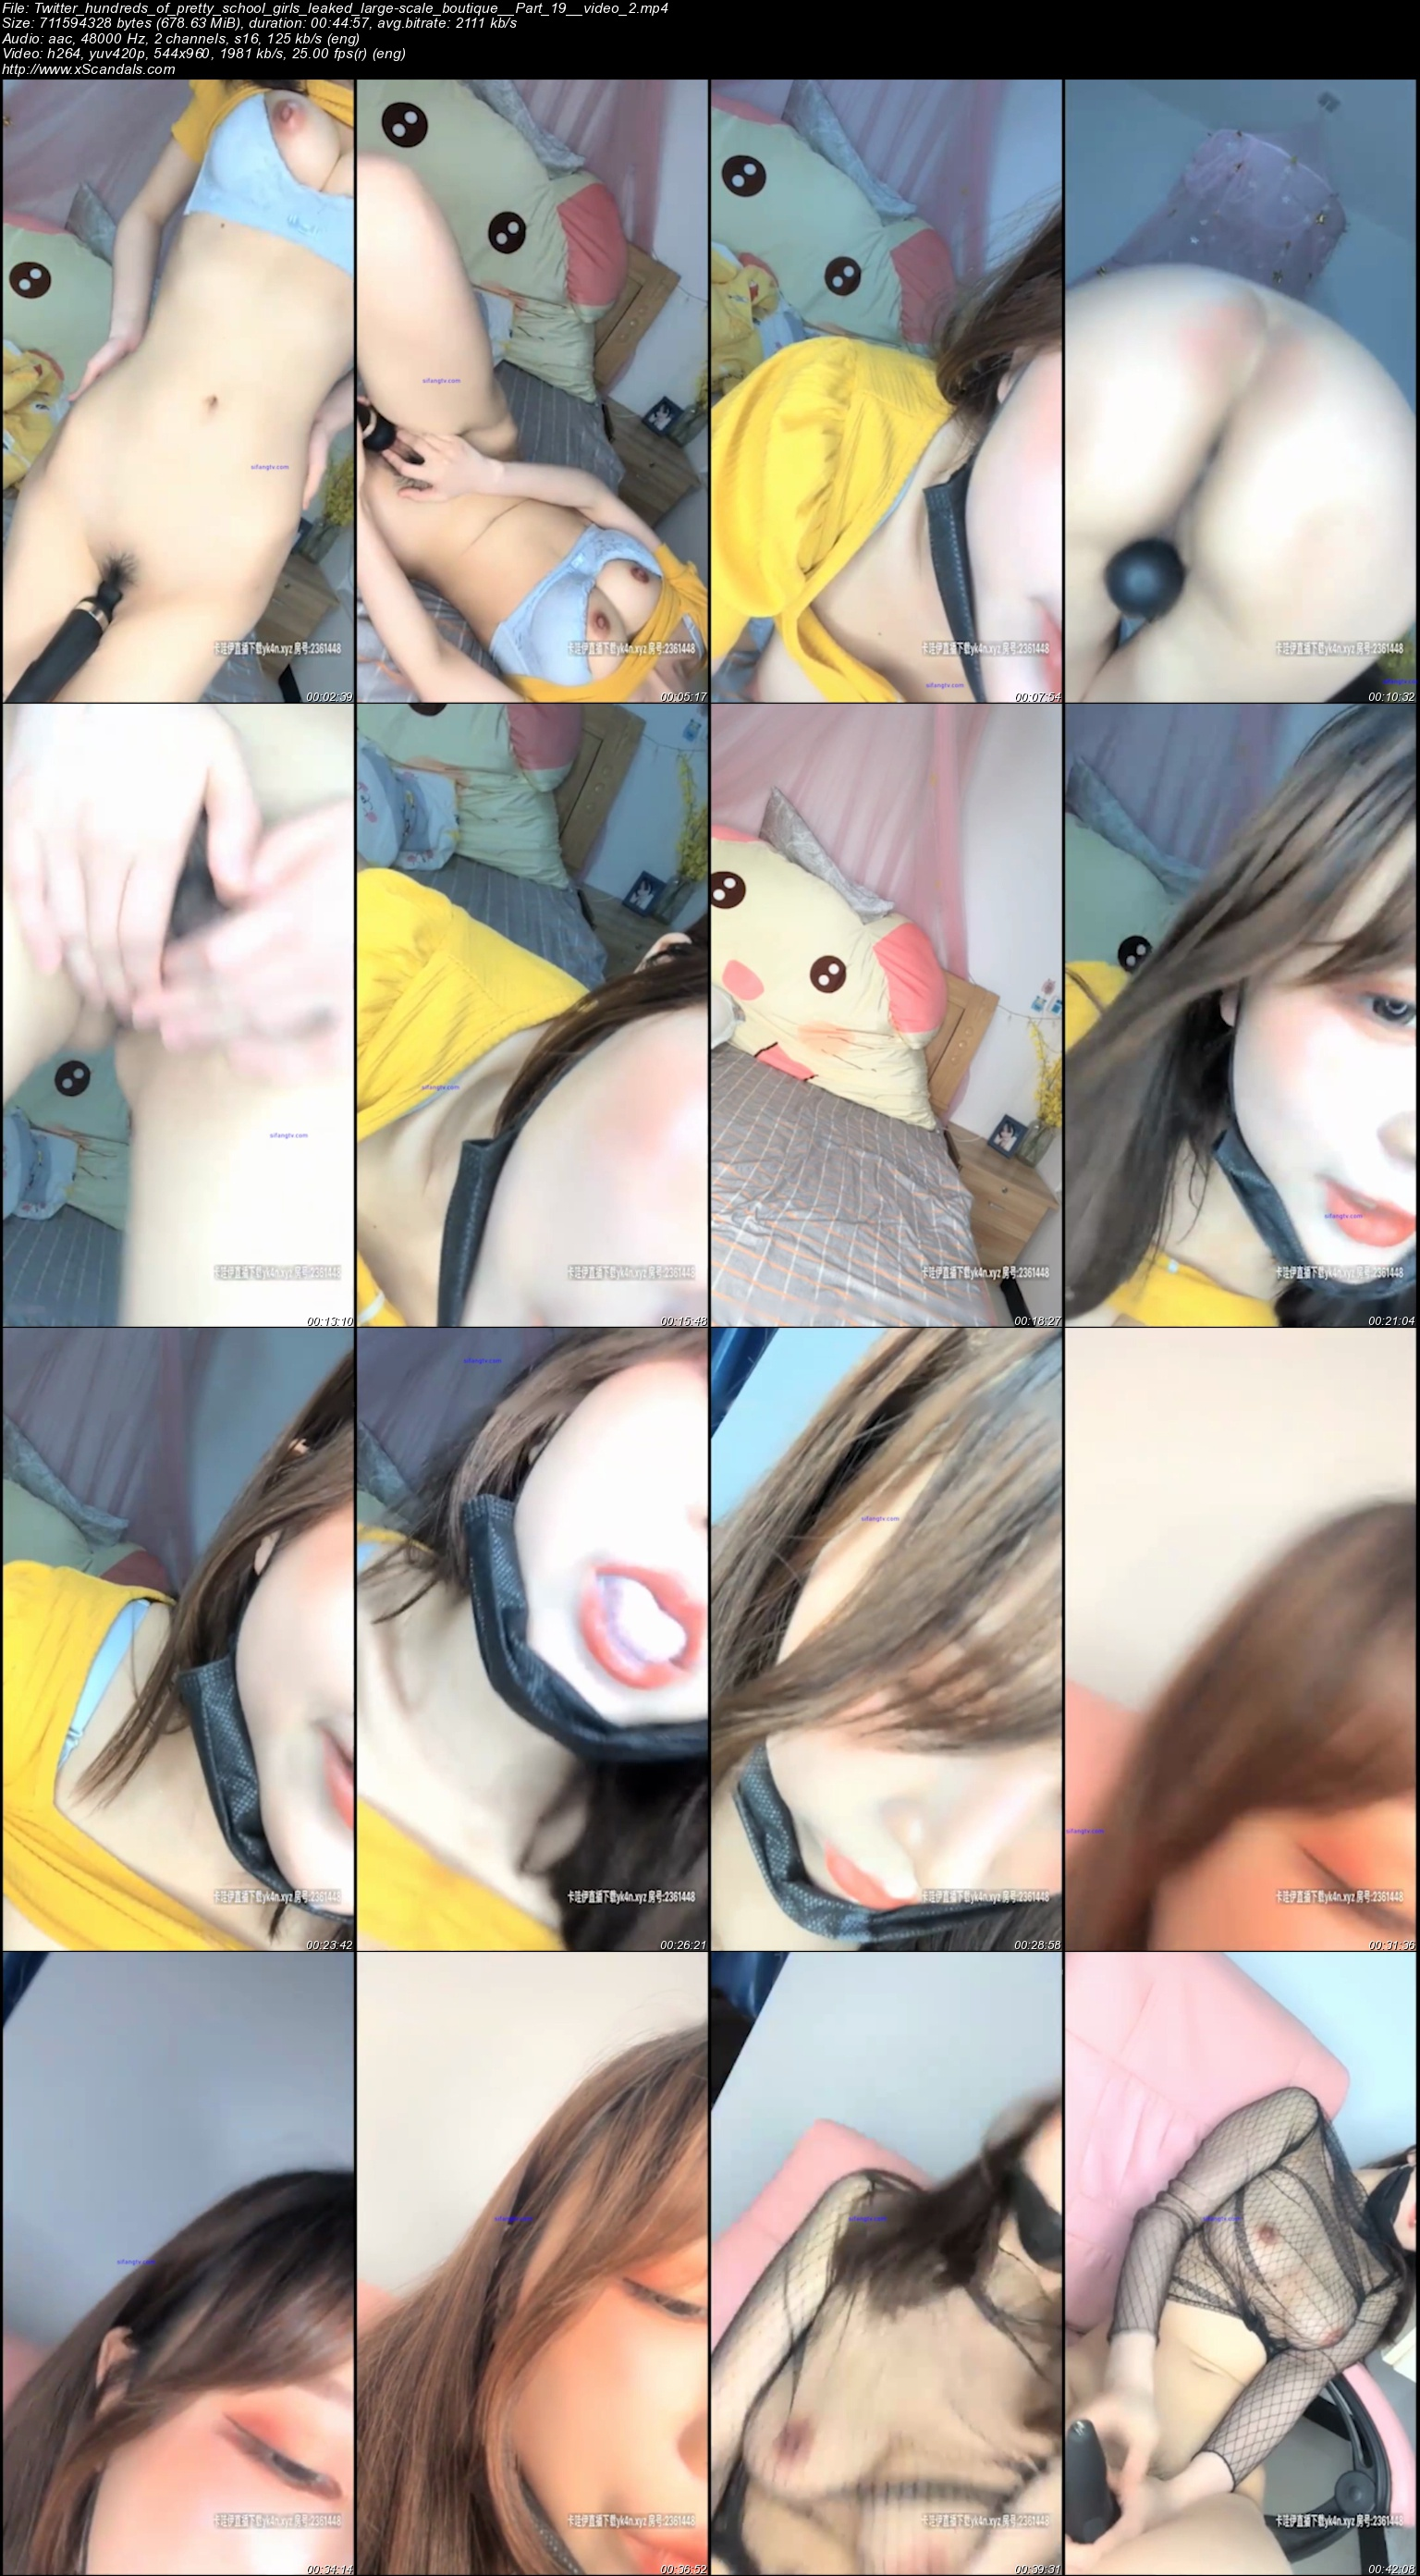 Twitter_hundreds_of_pretty_school_girls_leaked_large-scale_boutique__Part_19__video_2.jpeg